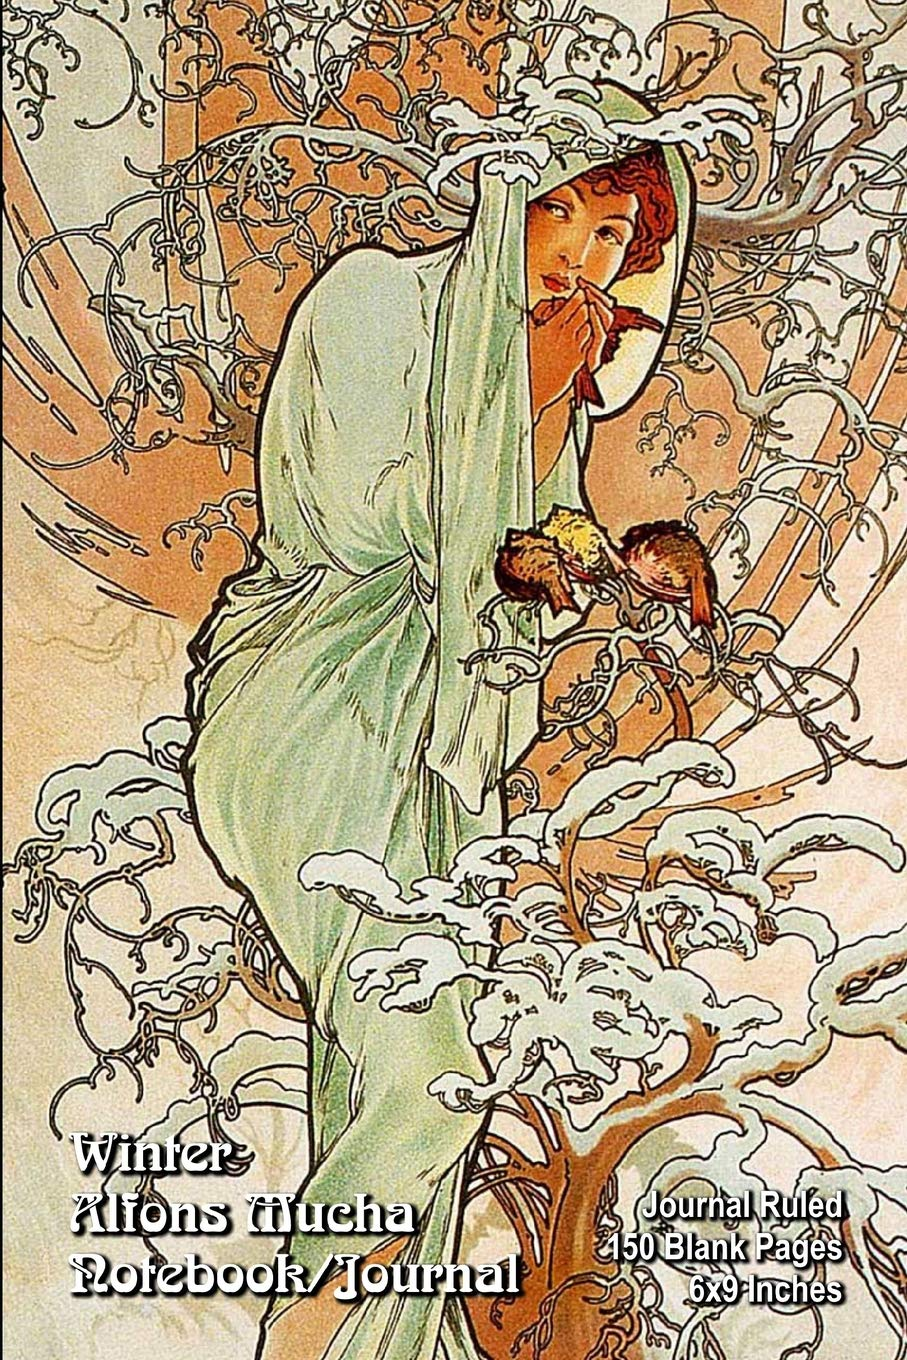 Winter - Alfons Mucha - Notebook/Journal: Journal Ruled - 150 Blank Pages - 6x9 Inches